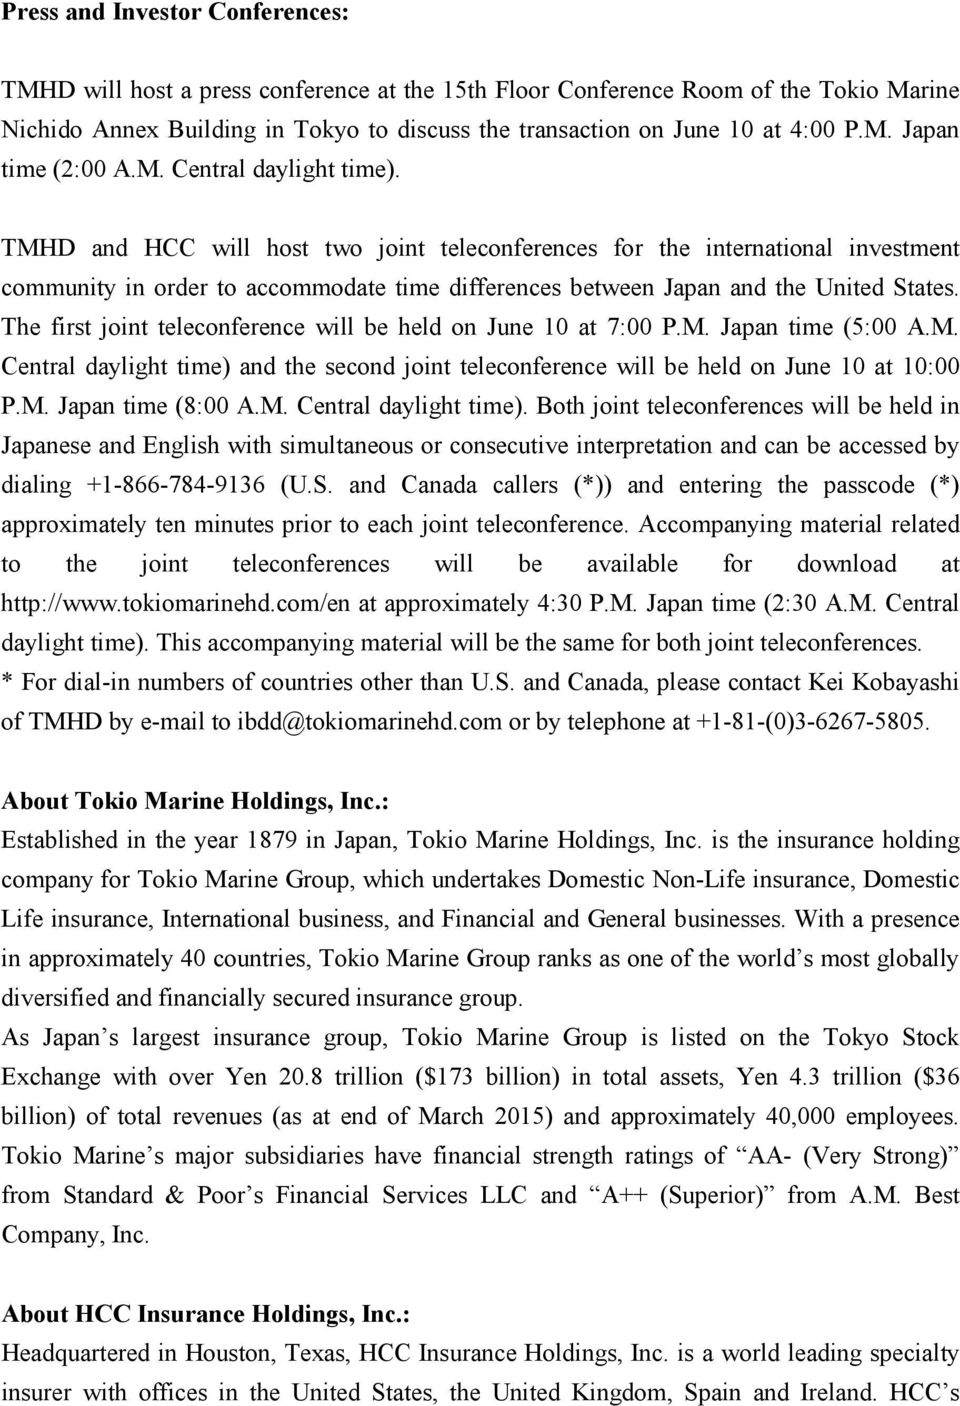 TMHD and HCC will host two joint teleconferences for the international investment community in order to accommodate time differences between Japan and the United States.